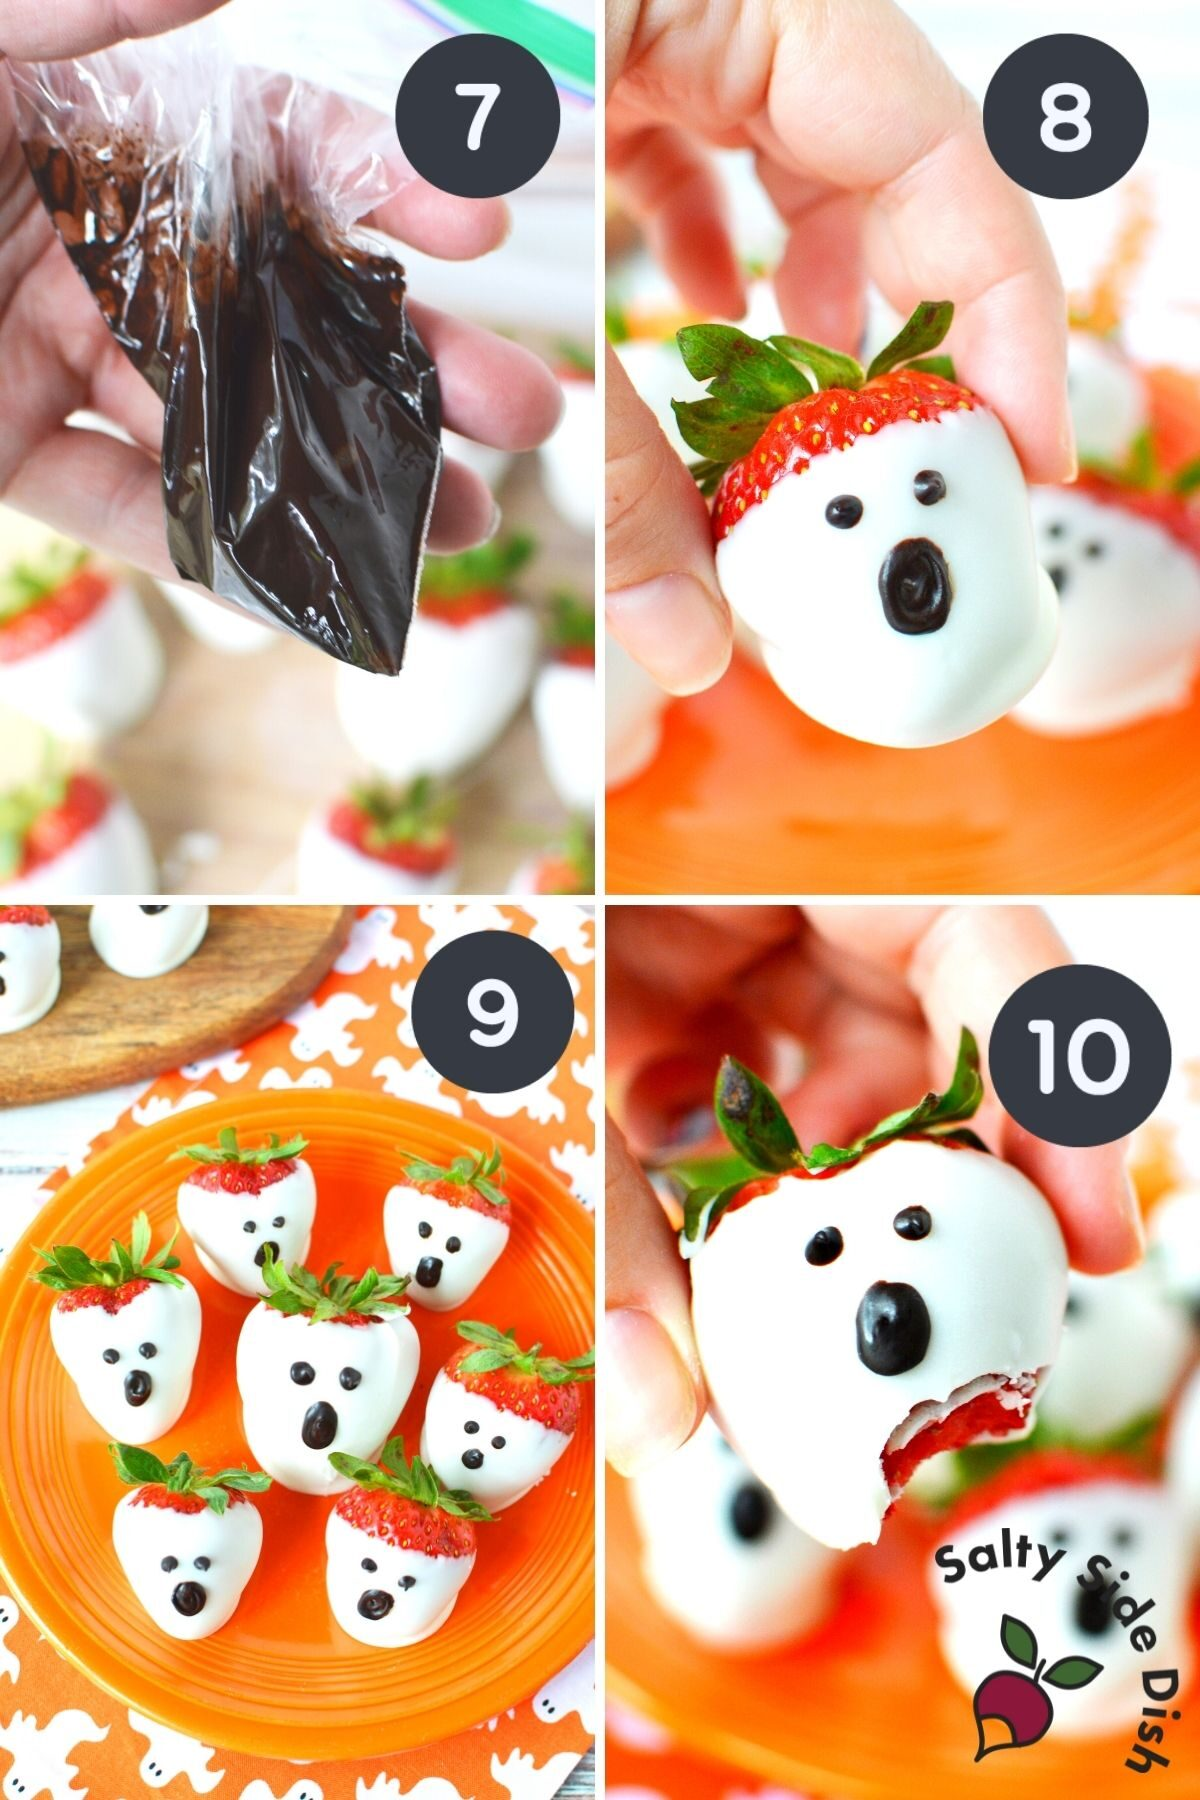 4 image collage on how to turn strawberries into a ghost appetizer.